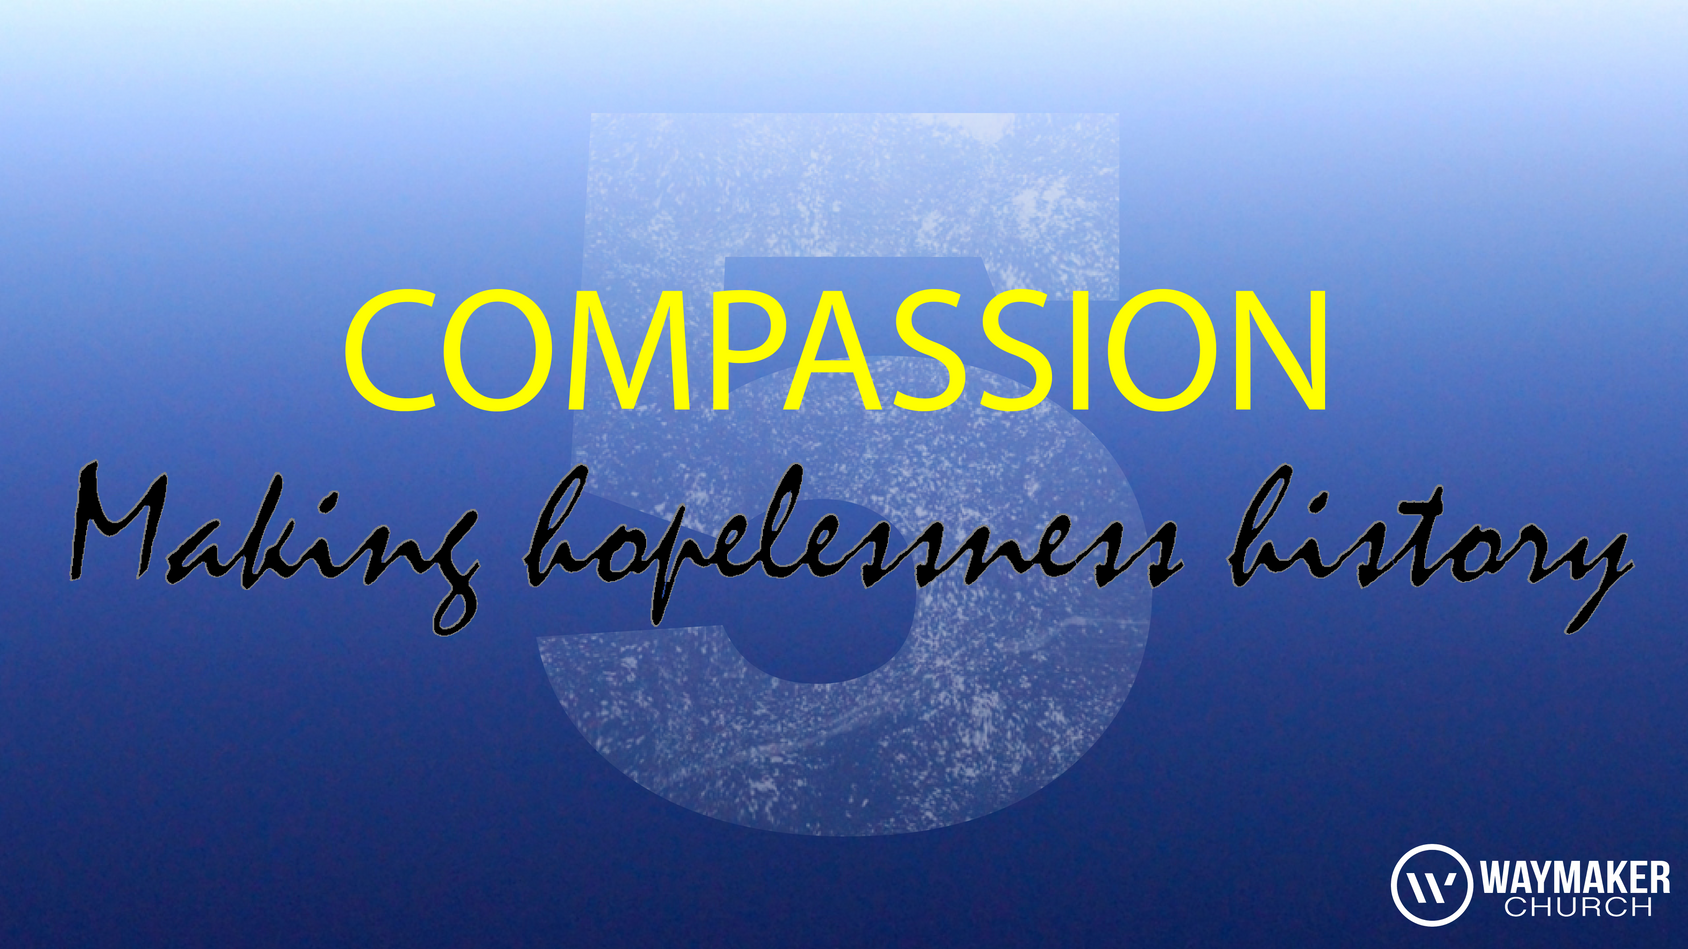 We believe that the church should operate as the hands and feet of Jesus giving and providing compassion to those in need. Jesus Christ didn't die on the cross for church budgets, programs or attendance figures. He didn't die on the cross for acreage, square footage and stained glass windows. He died for people! People matter to God, and people matter to us.